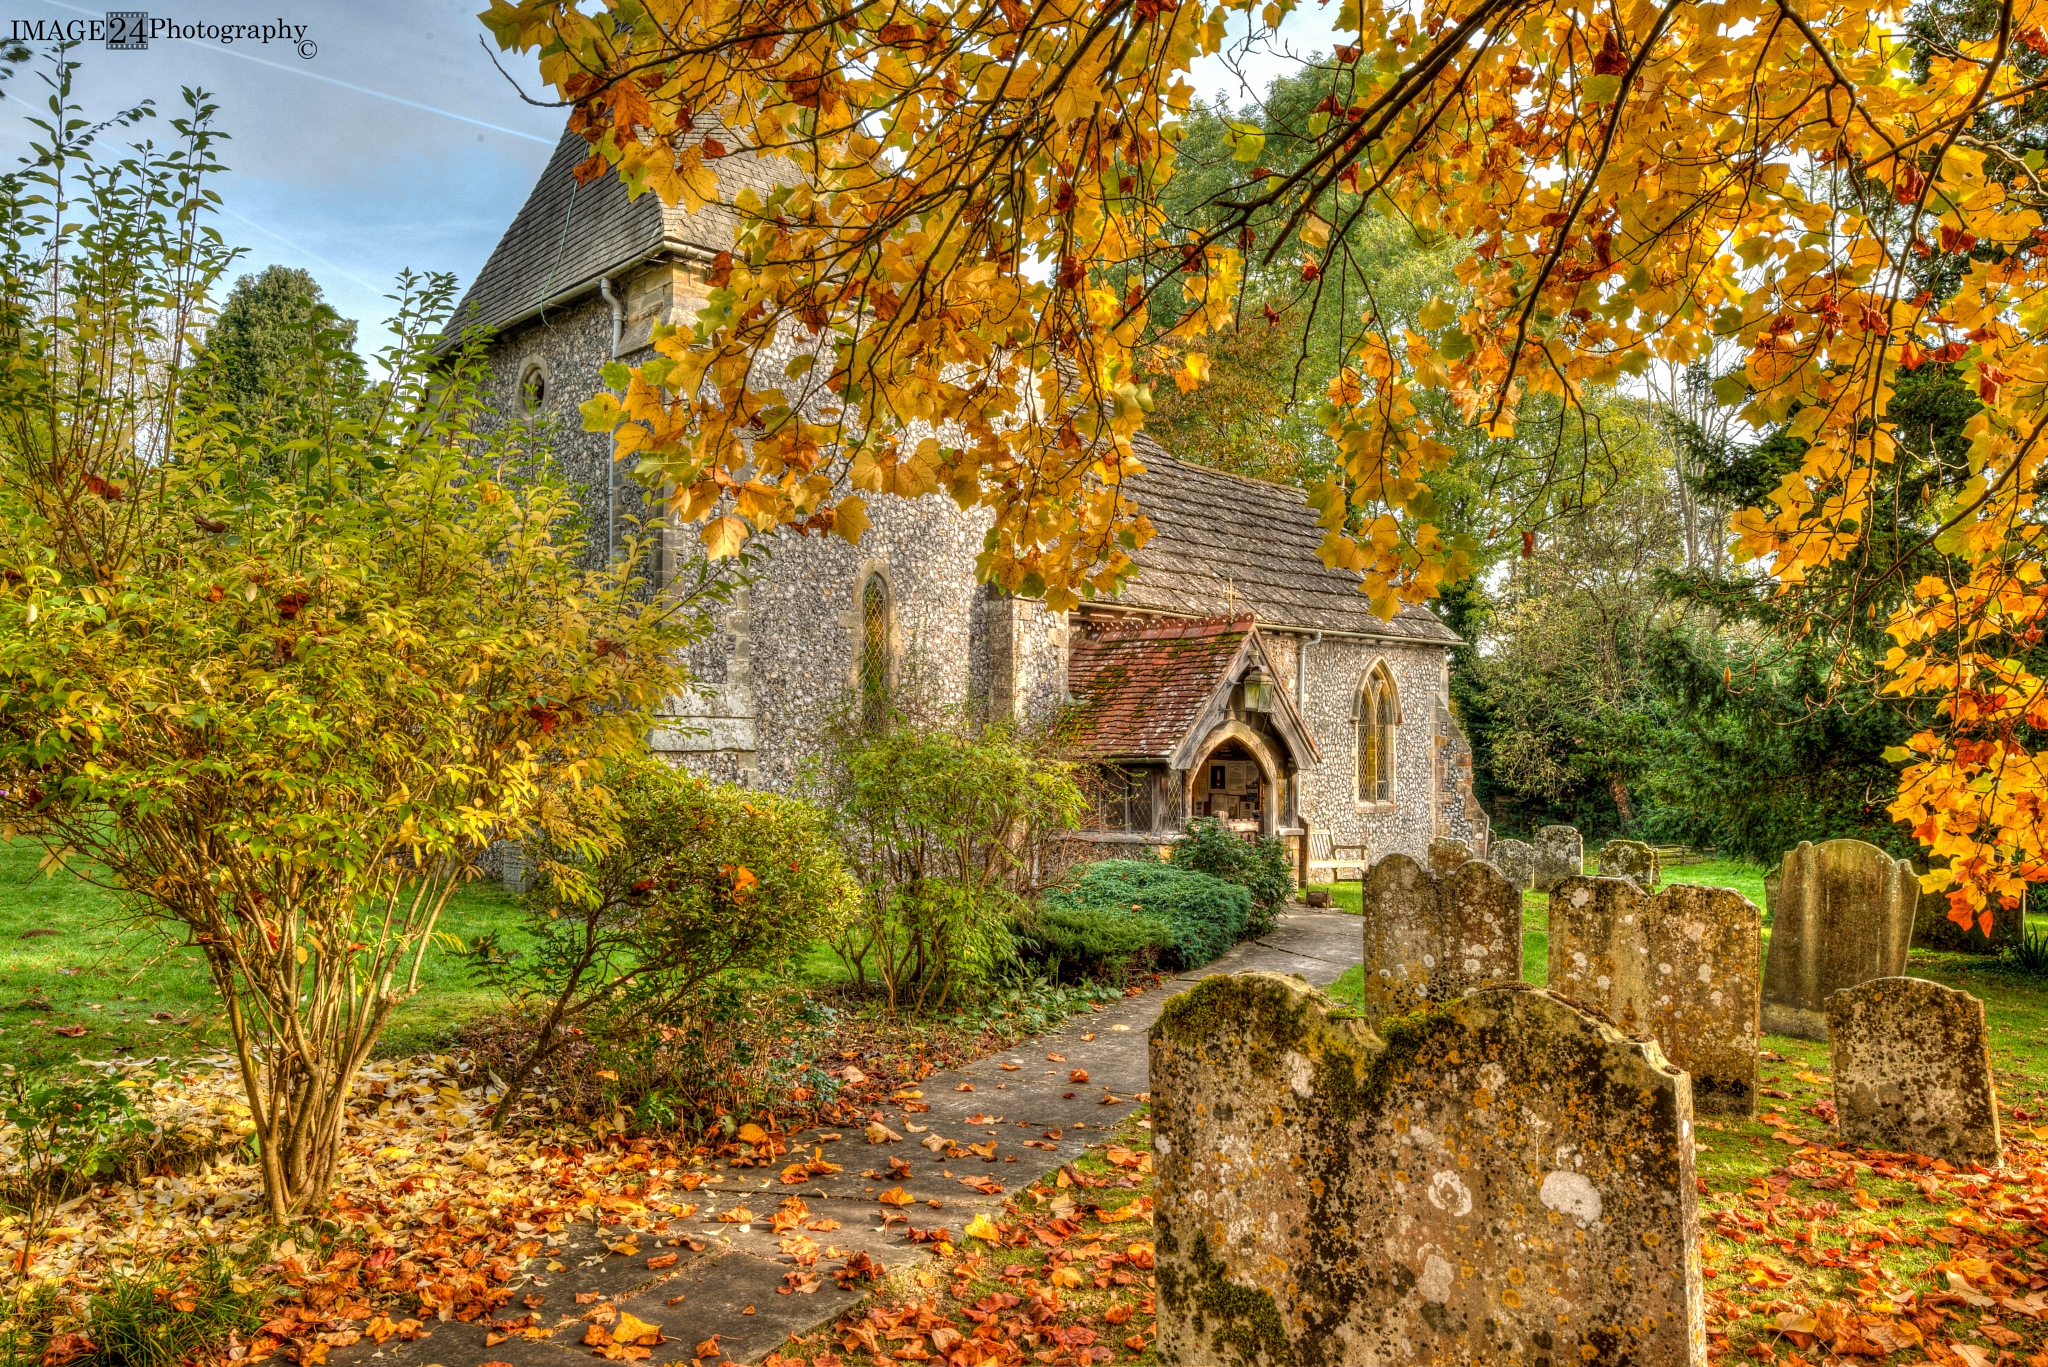 St James, Ashurst, West Sussex by image24